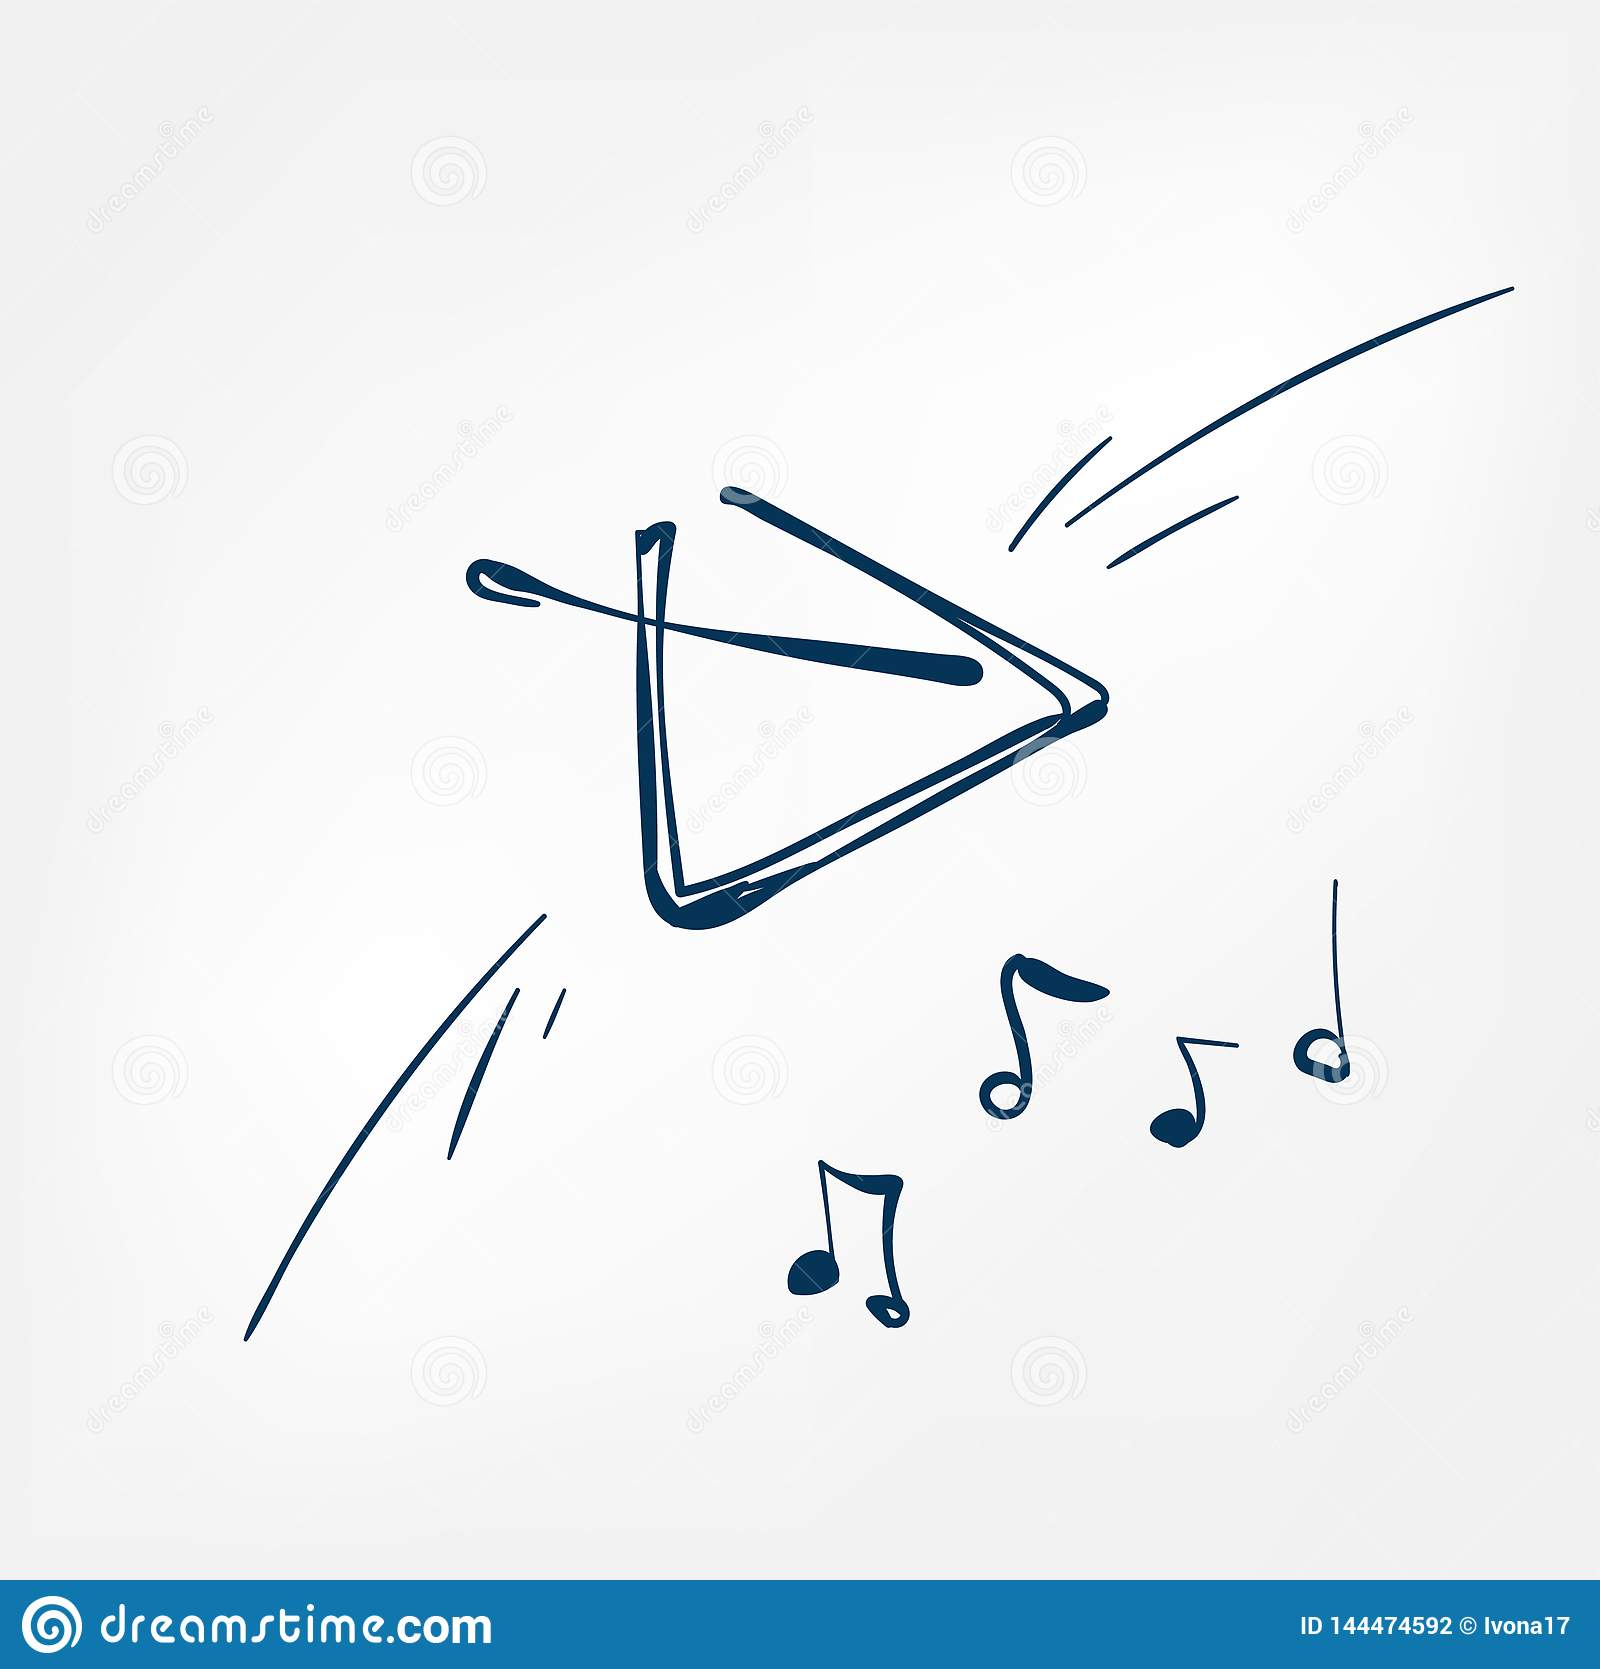 Musical triangle sketch line  design music instrument